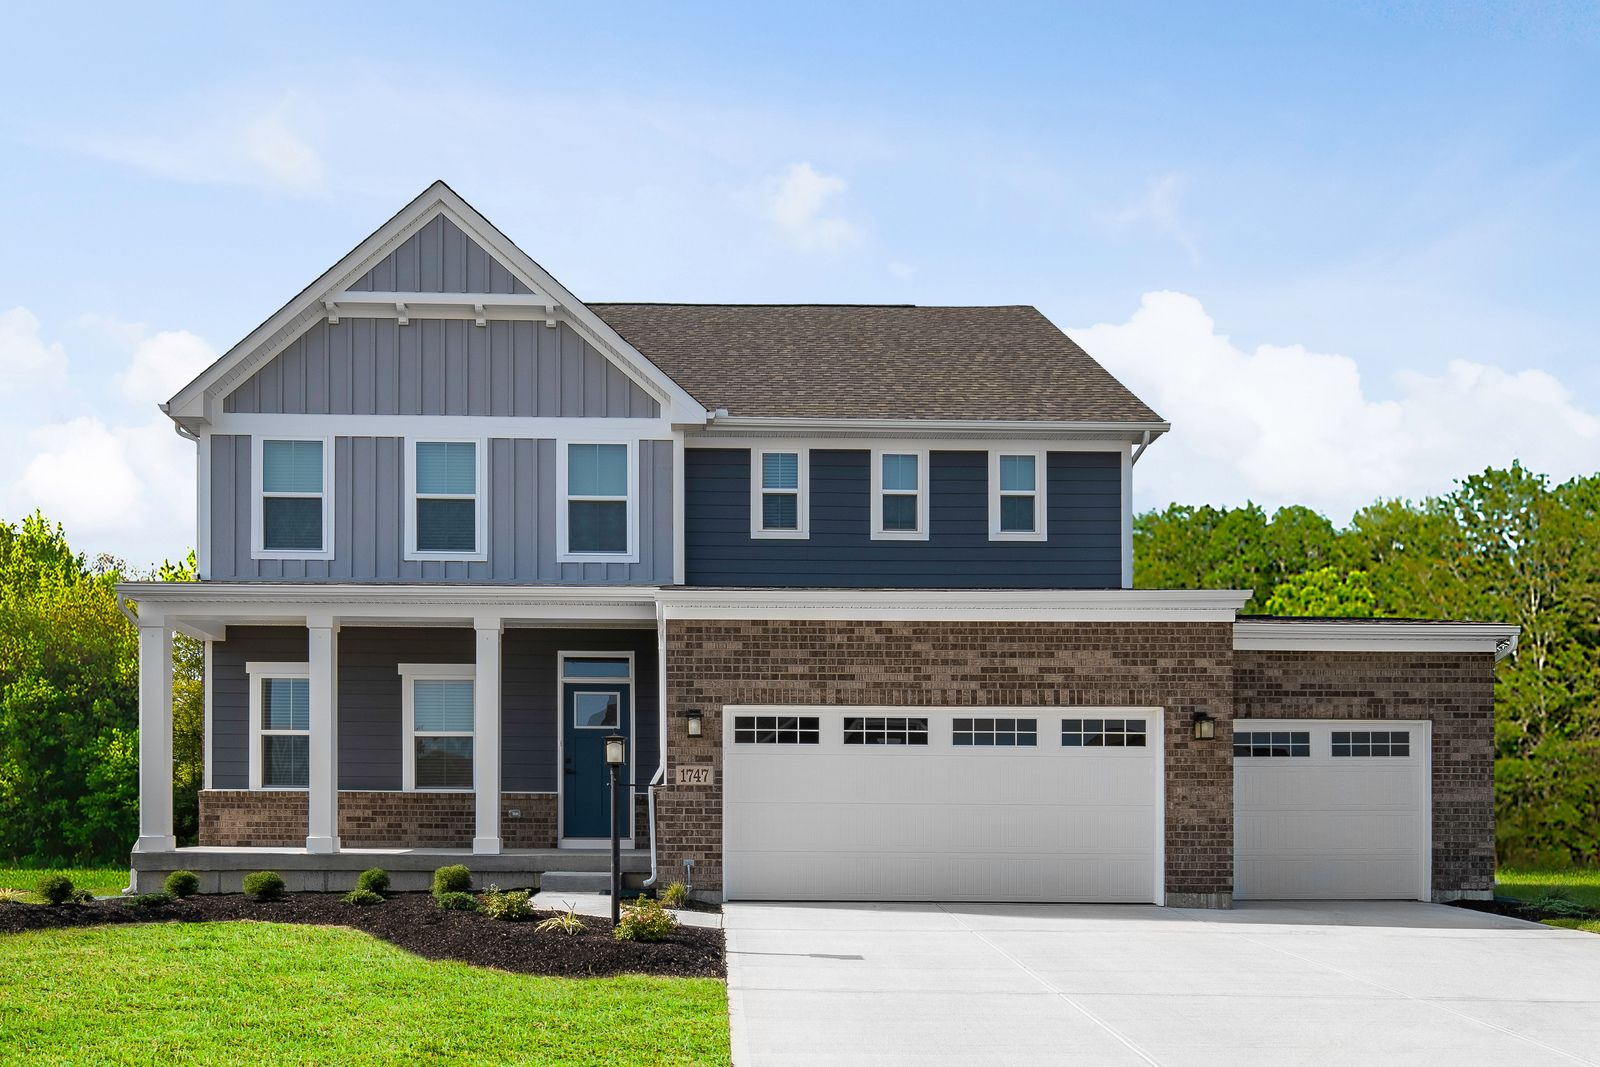 Welcome Home to Creekside at Winding Creek in Centerville School District:Wooded homesites up to 1/2 acre or larger in Centerville School District. 3-car garages, included finished basements & community pool. From mid $300s!Click here to schedule your visit!